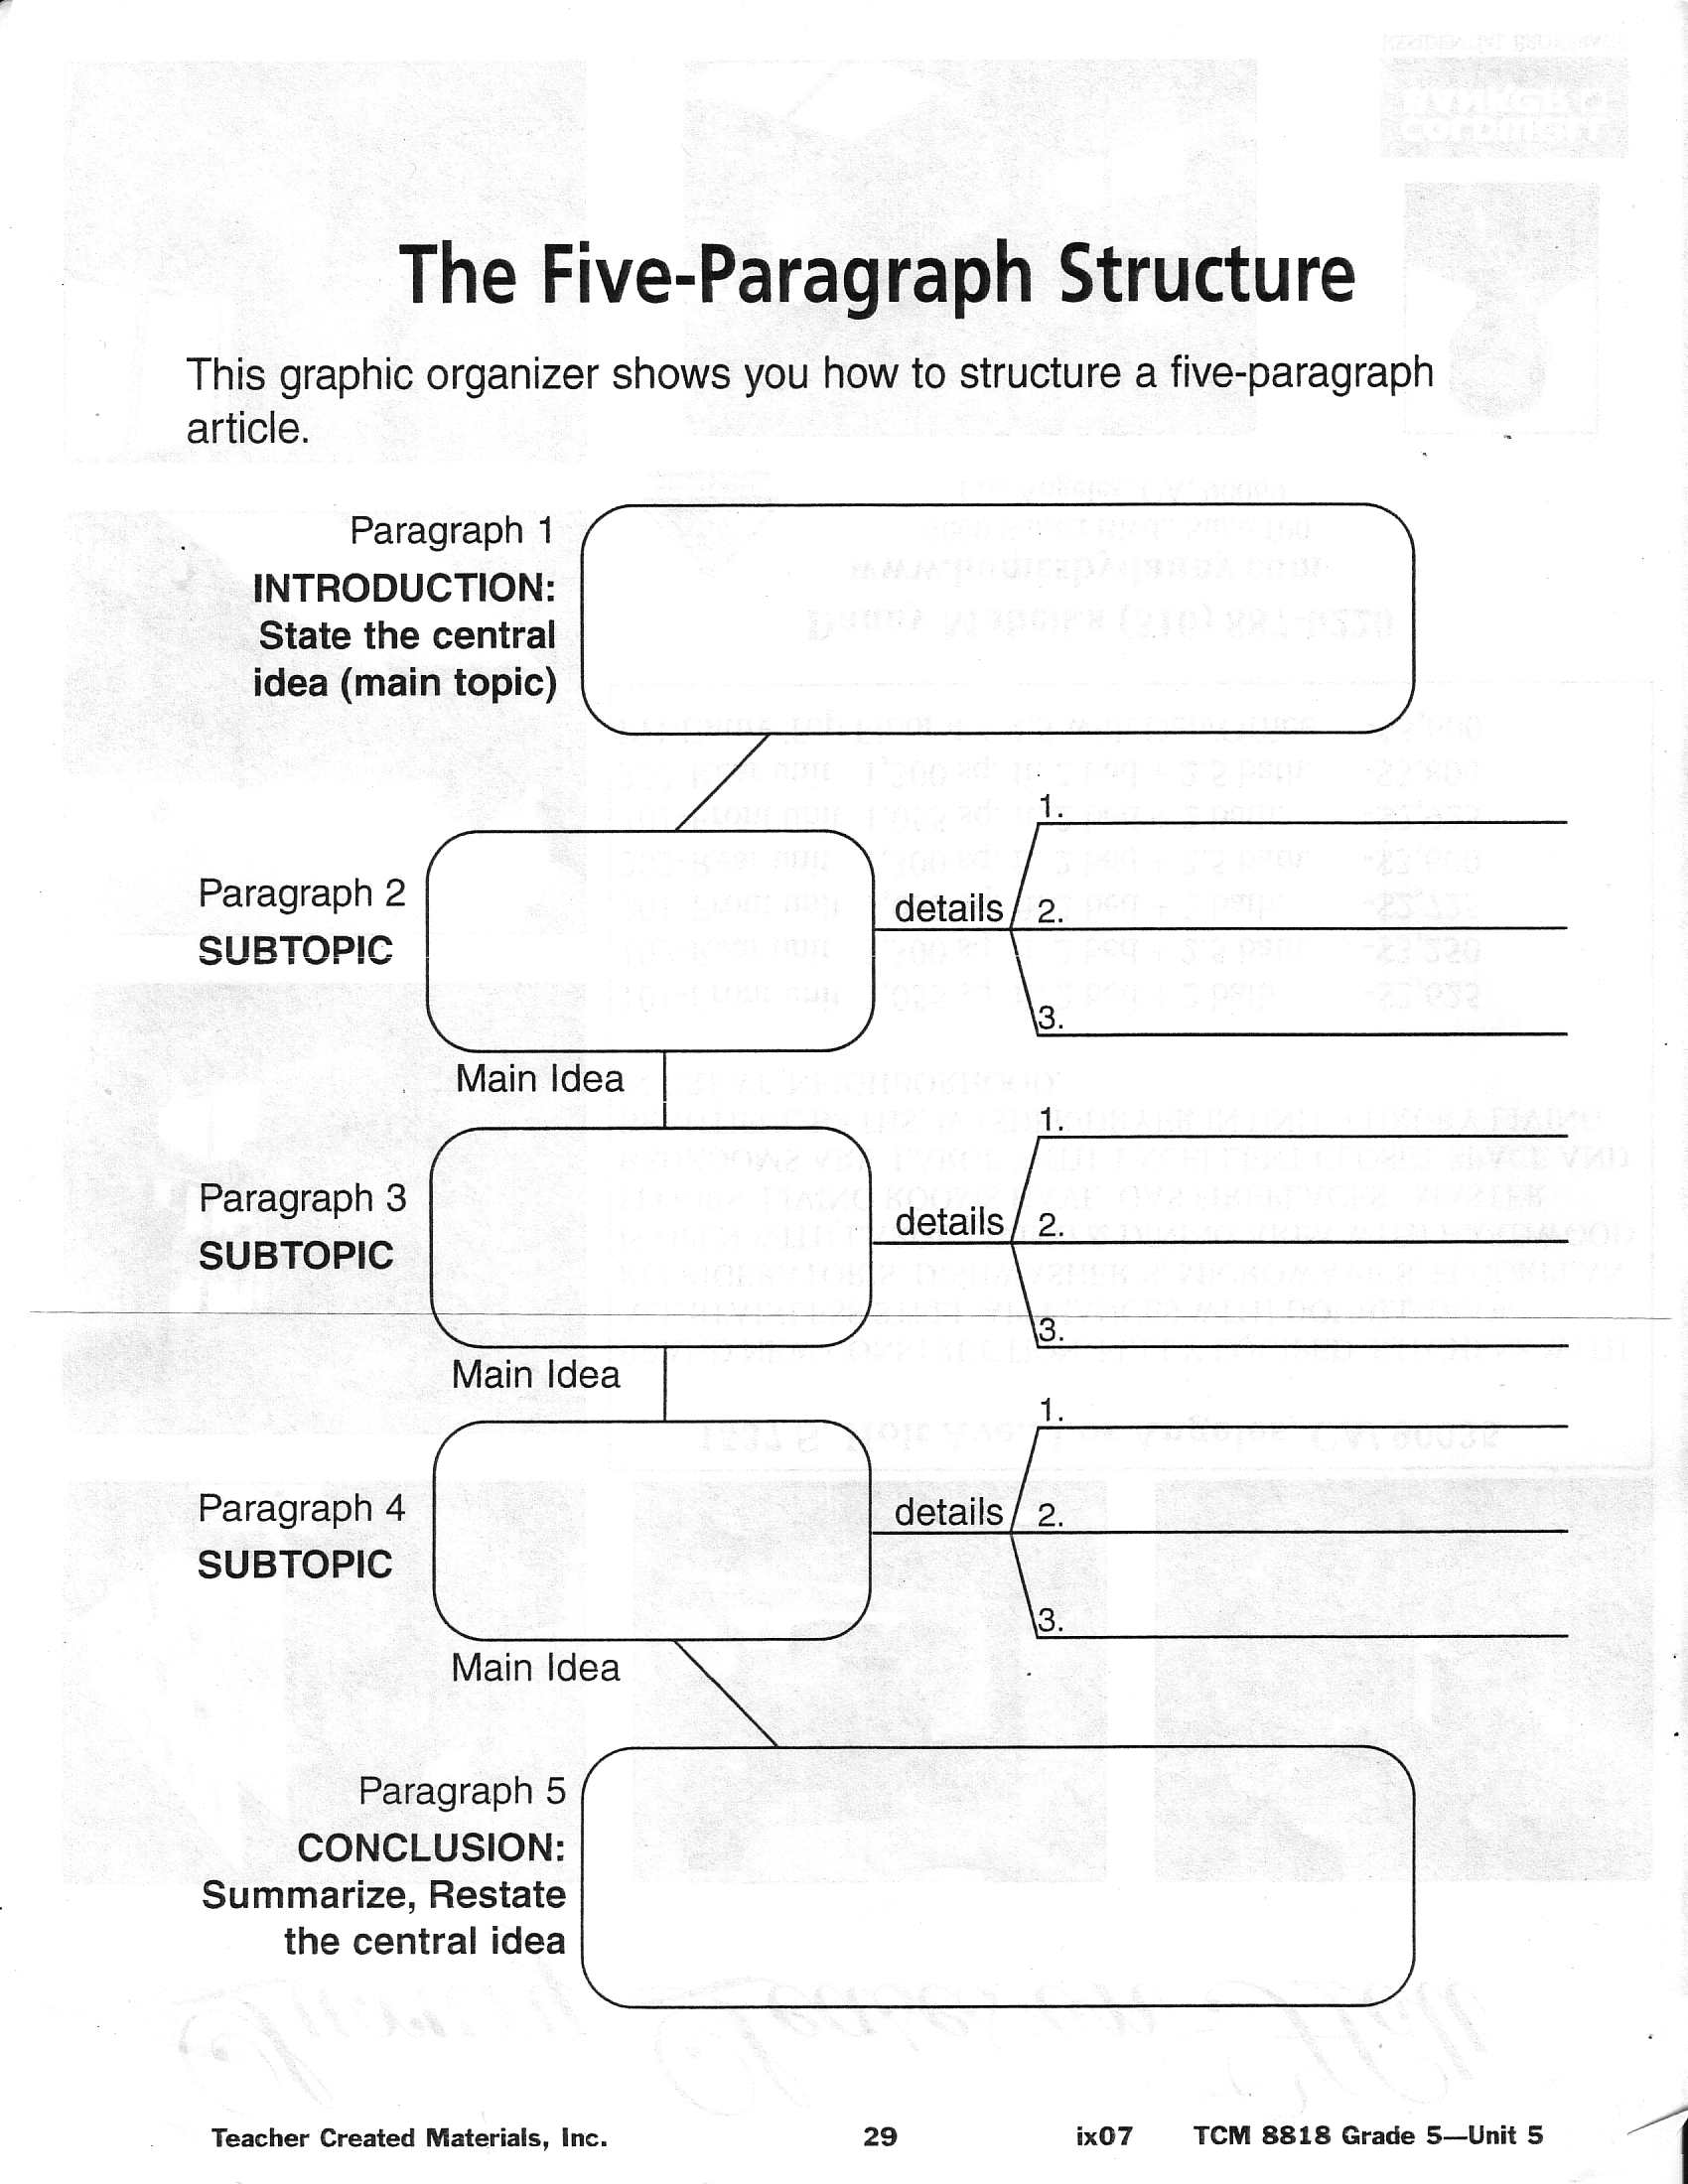 16 Best Images Of Narrative Writing Worksheets Middle School